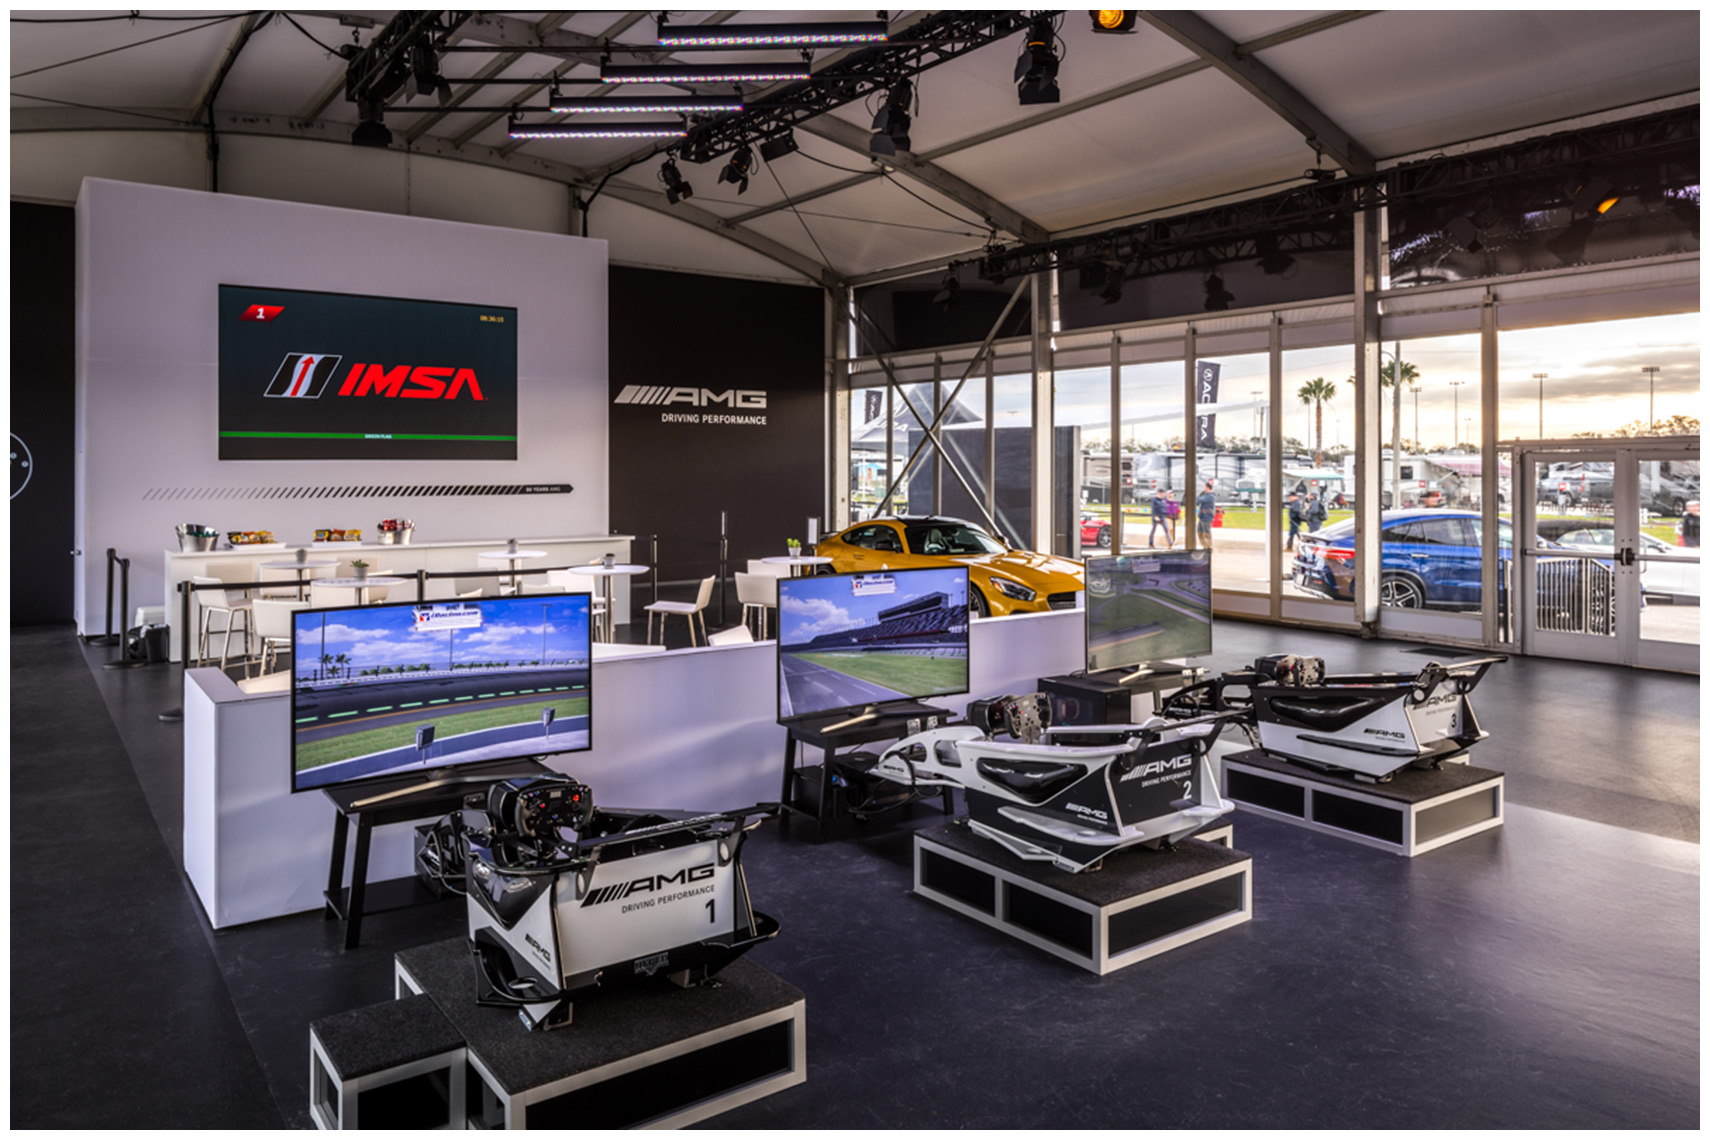 mercedes-benz-hospitality-daytona-speedway-rolex-simulators